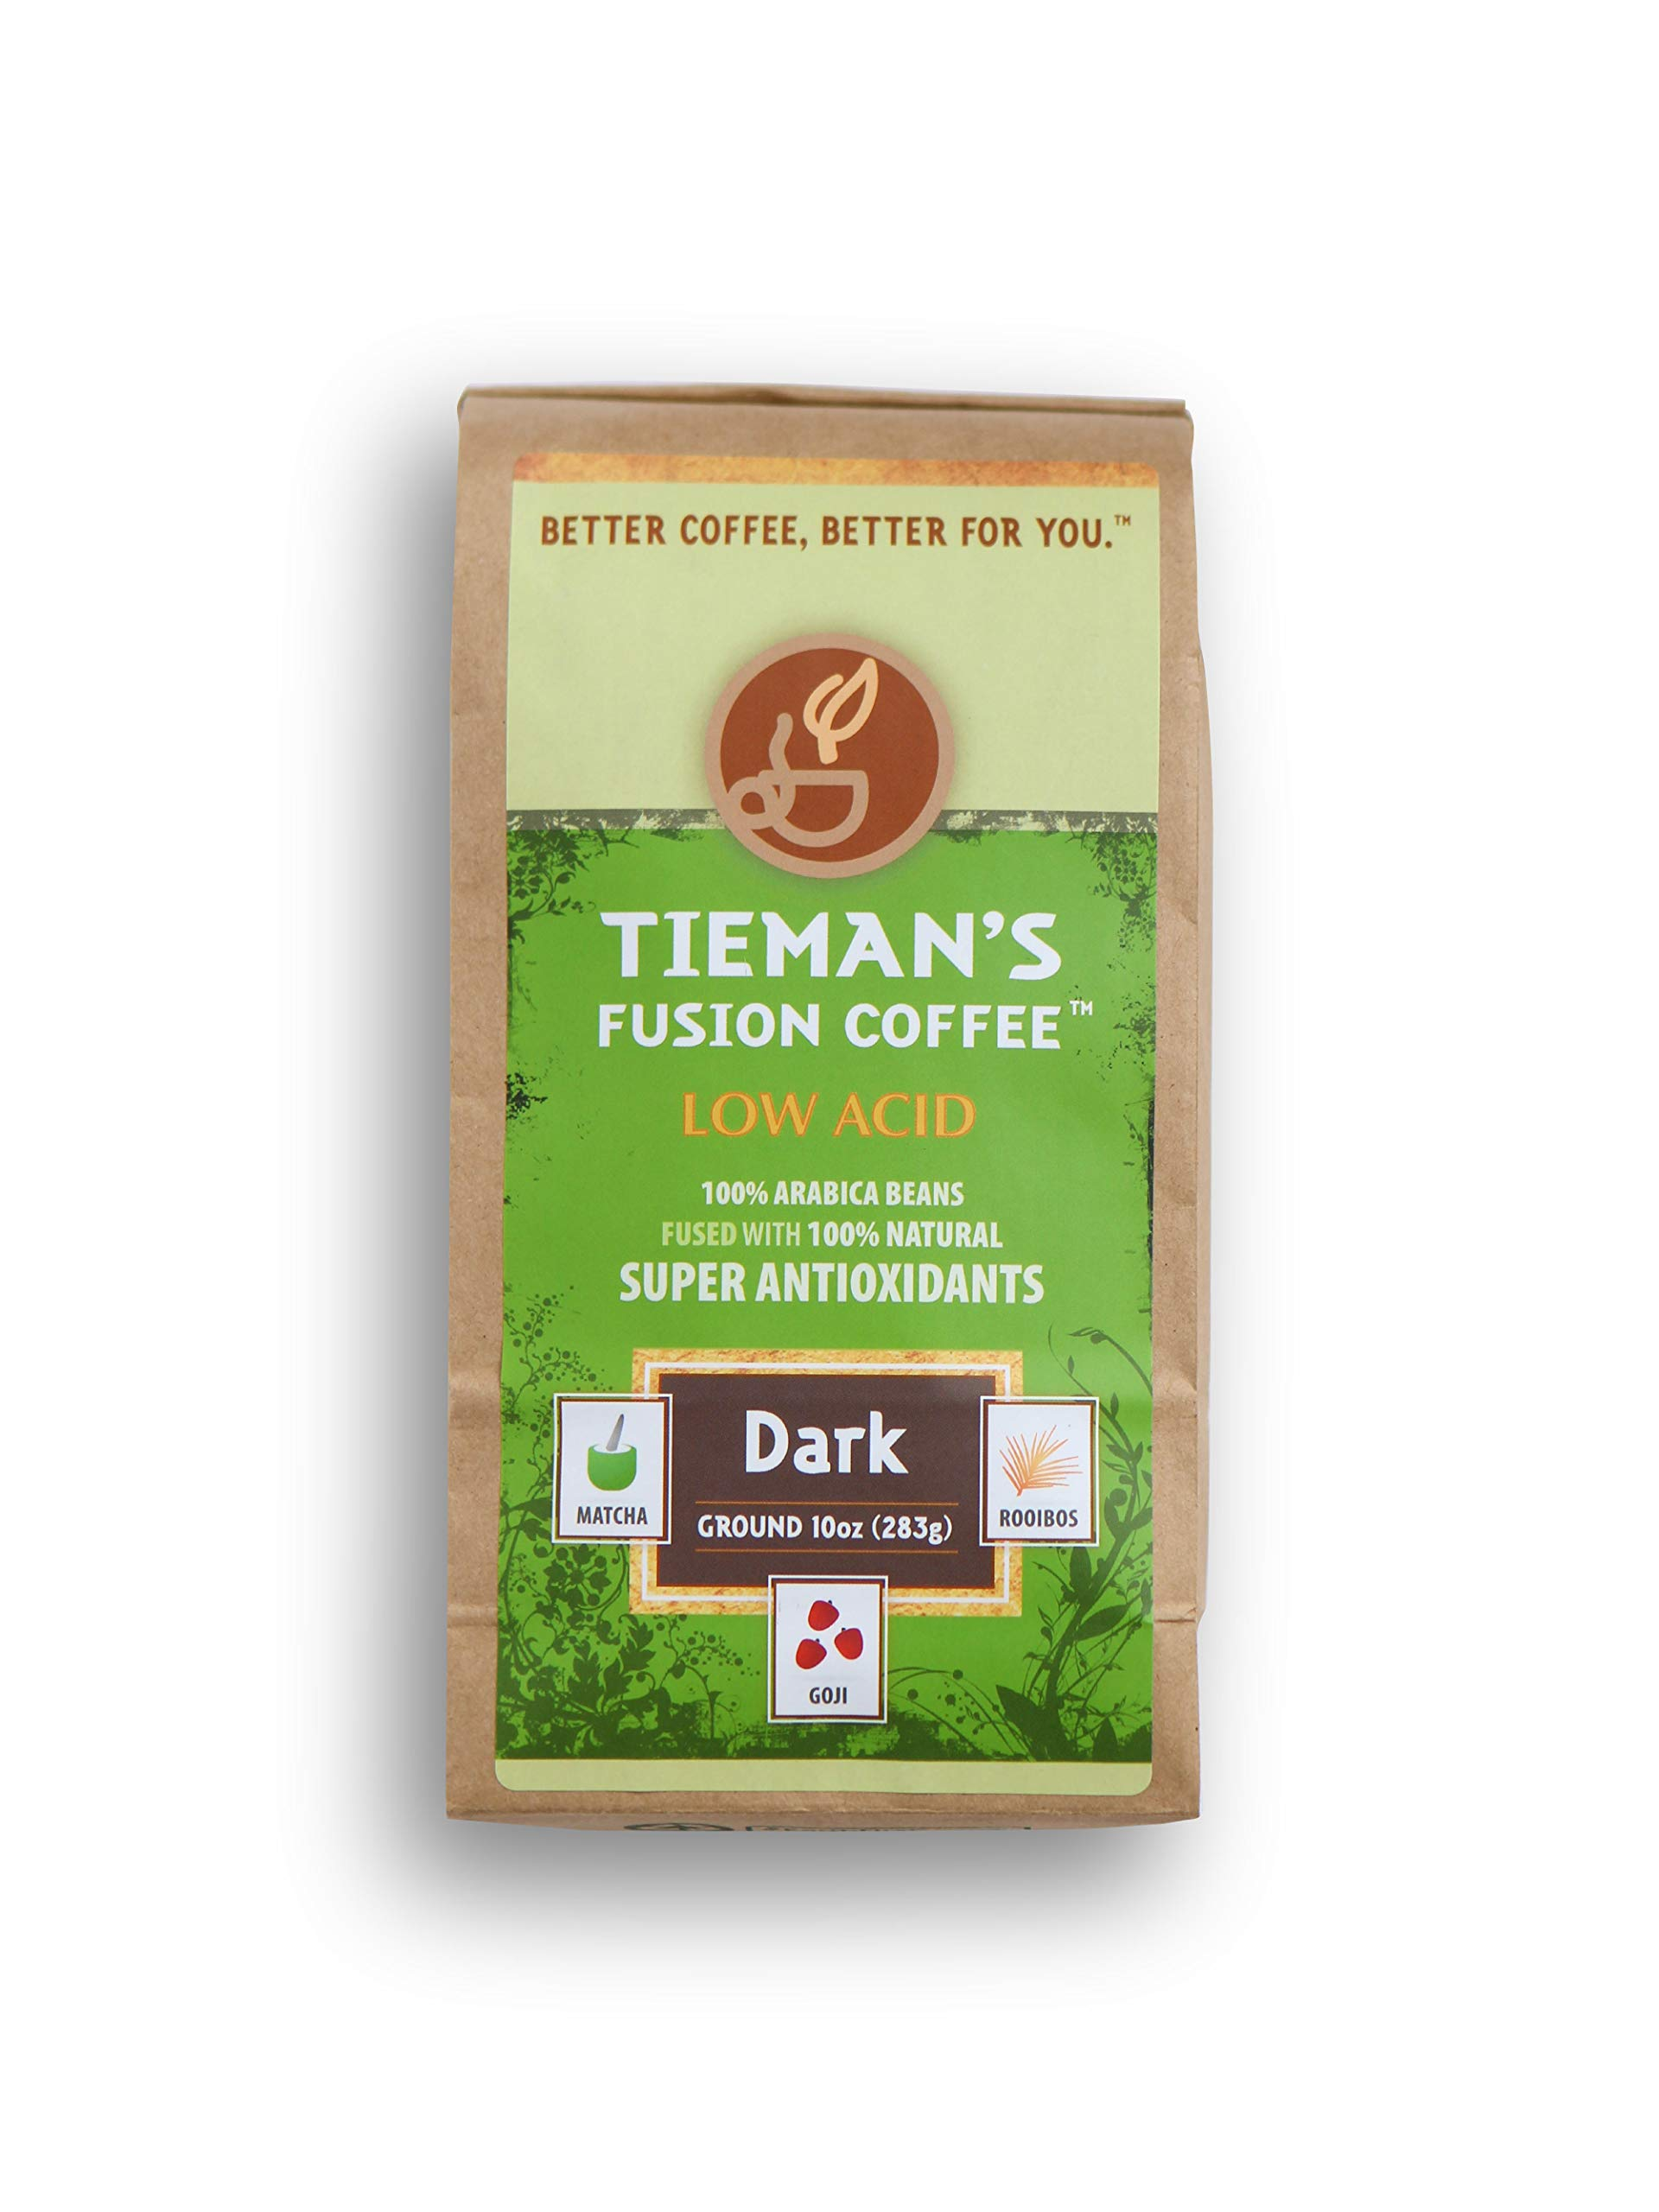 Tieman's Fusion Coffee